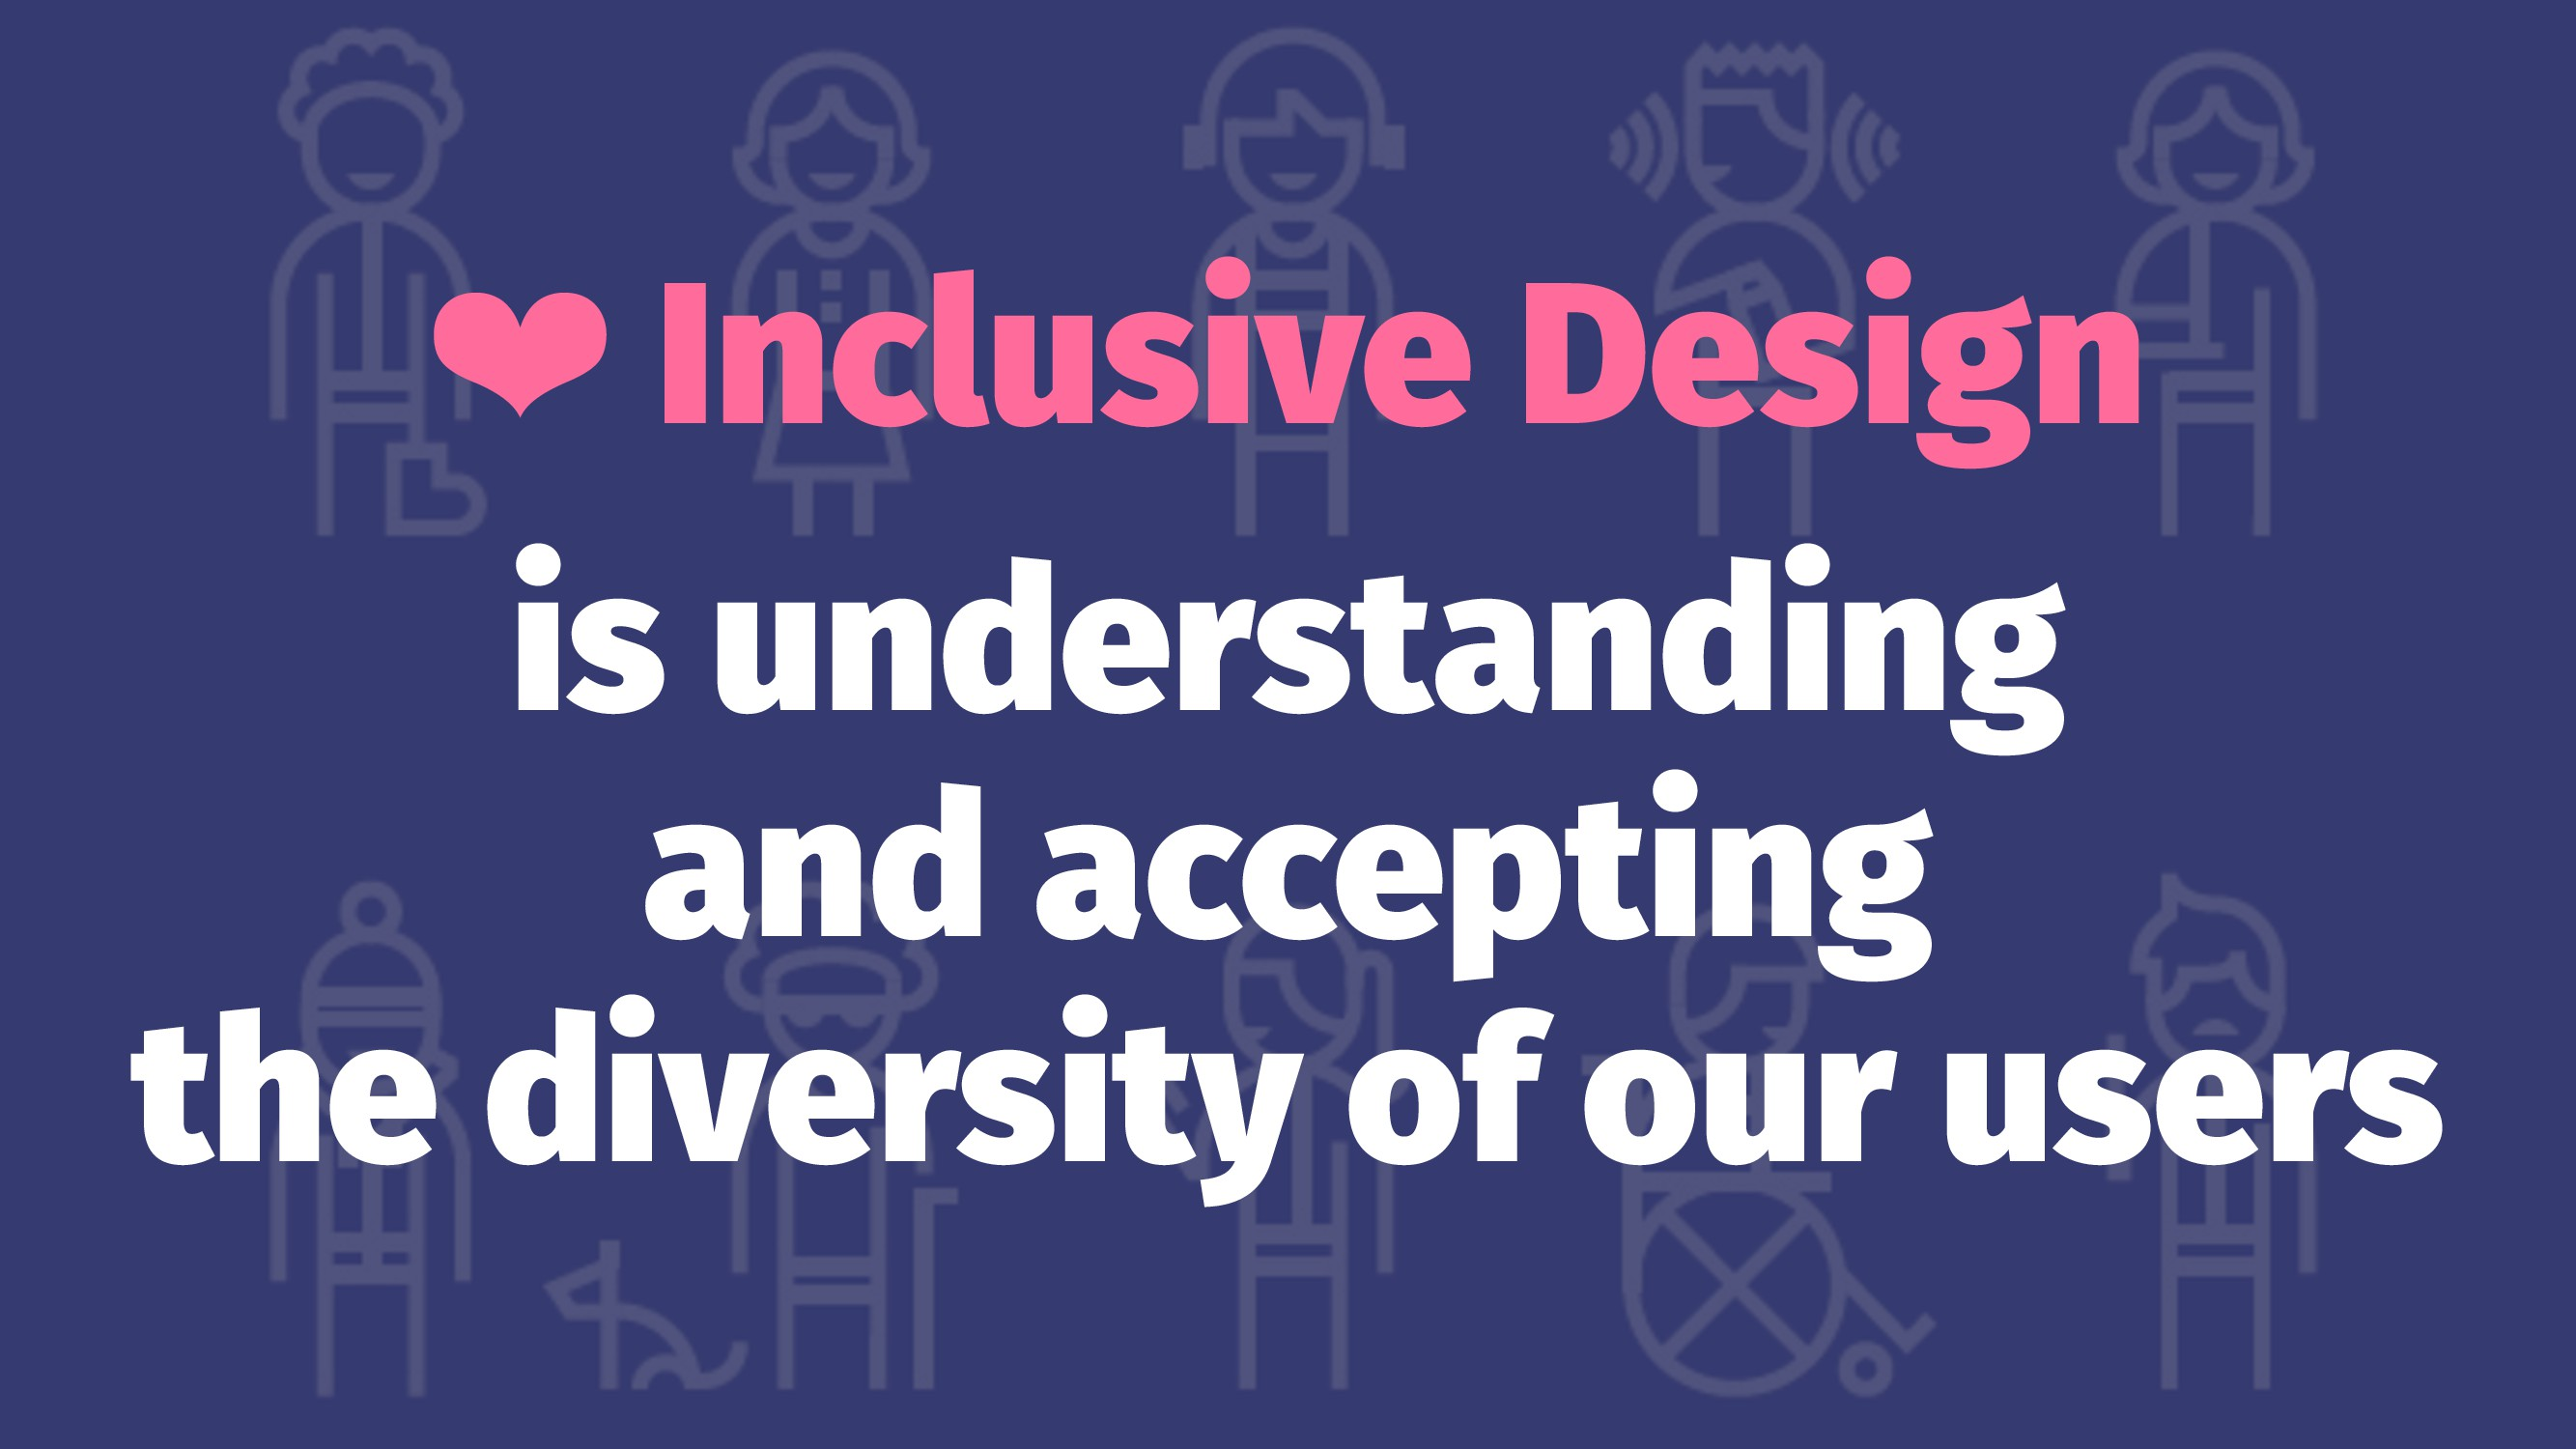 ❤ Inclusive Design is understanding and accepti...